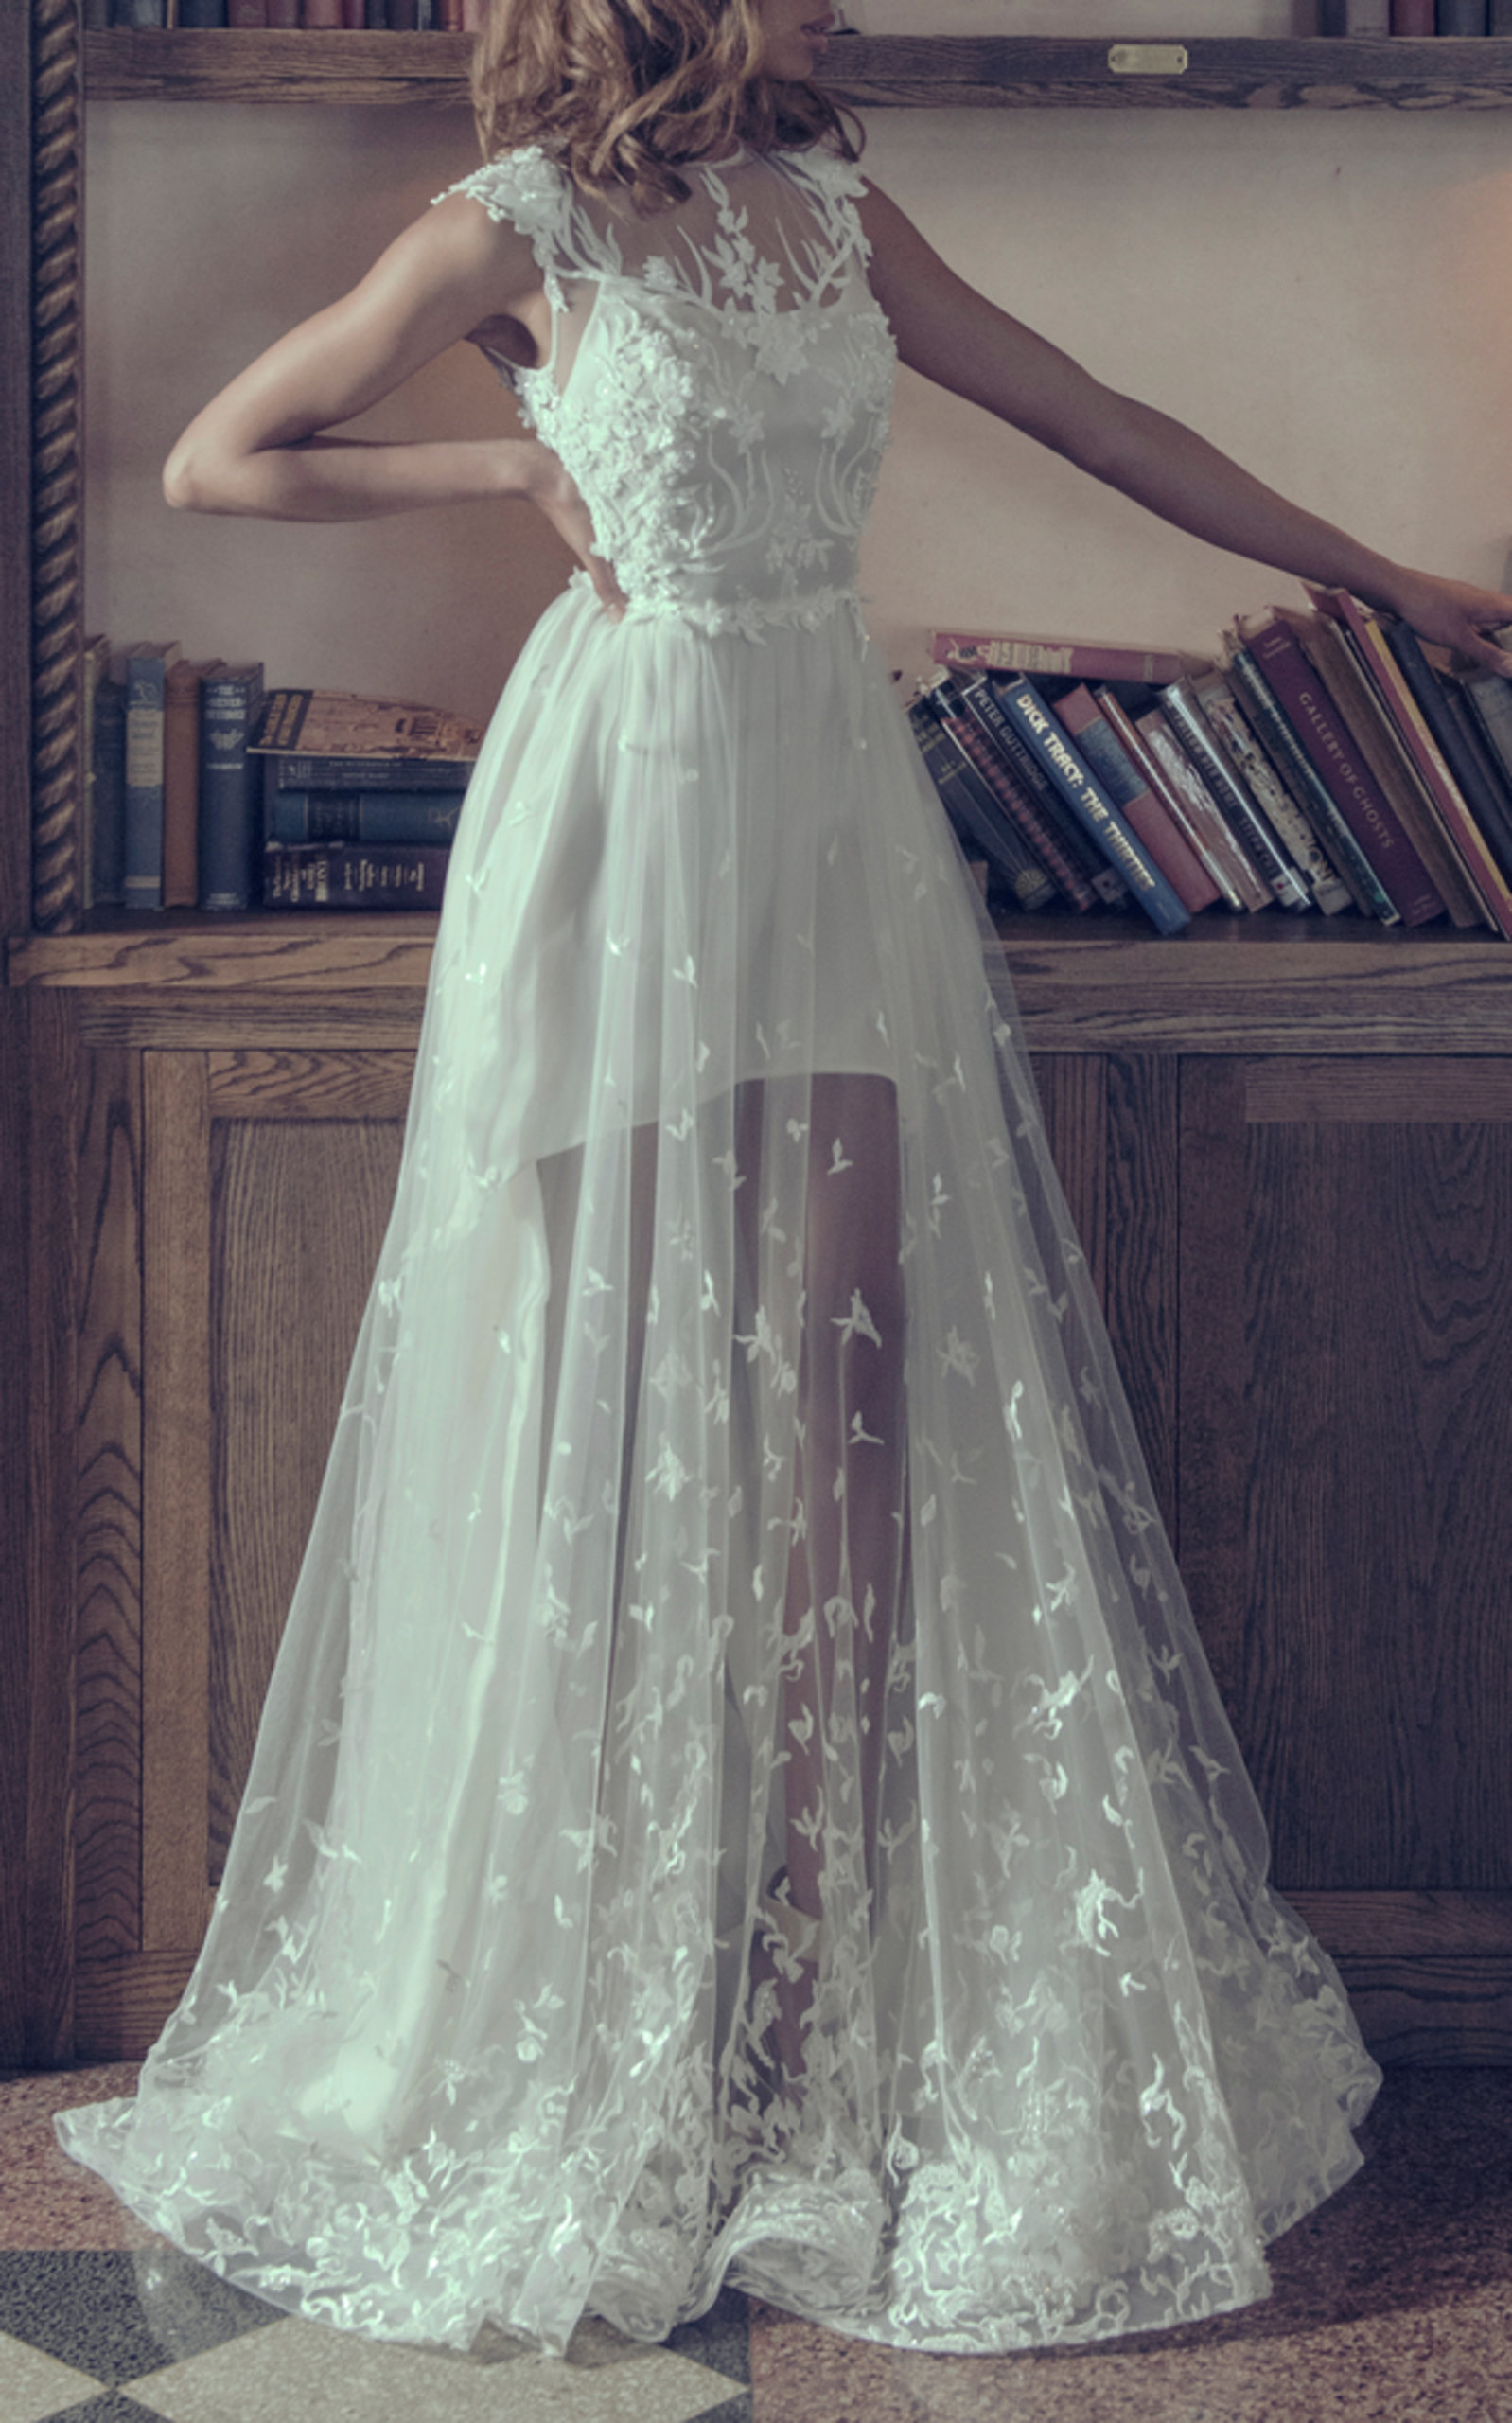 ADAM ZOHAR BLANCA ORGANZA DRESS